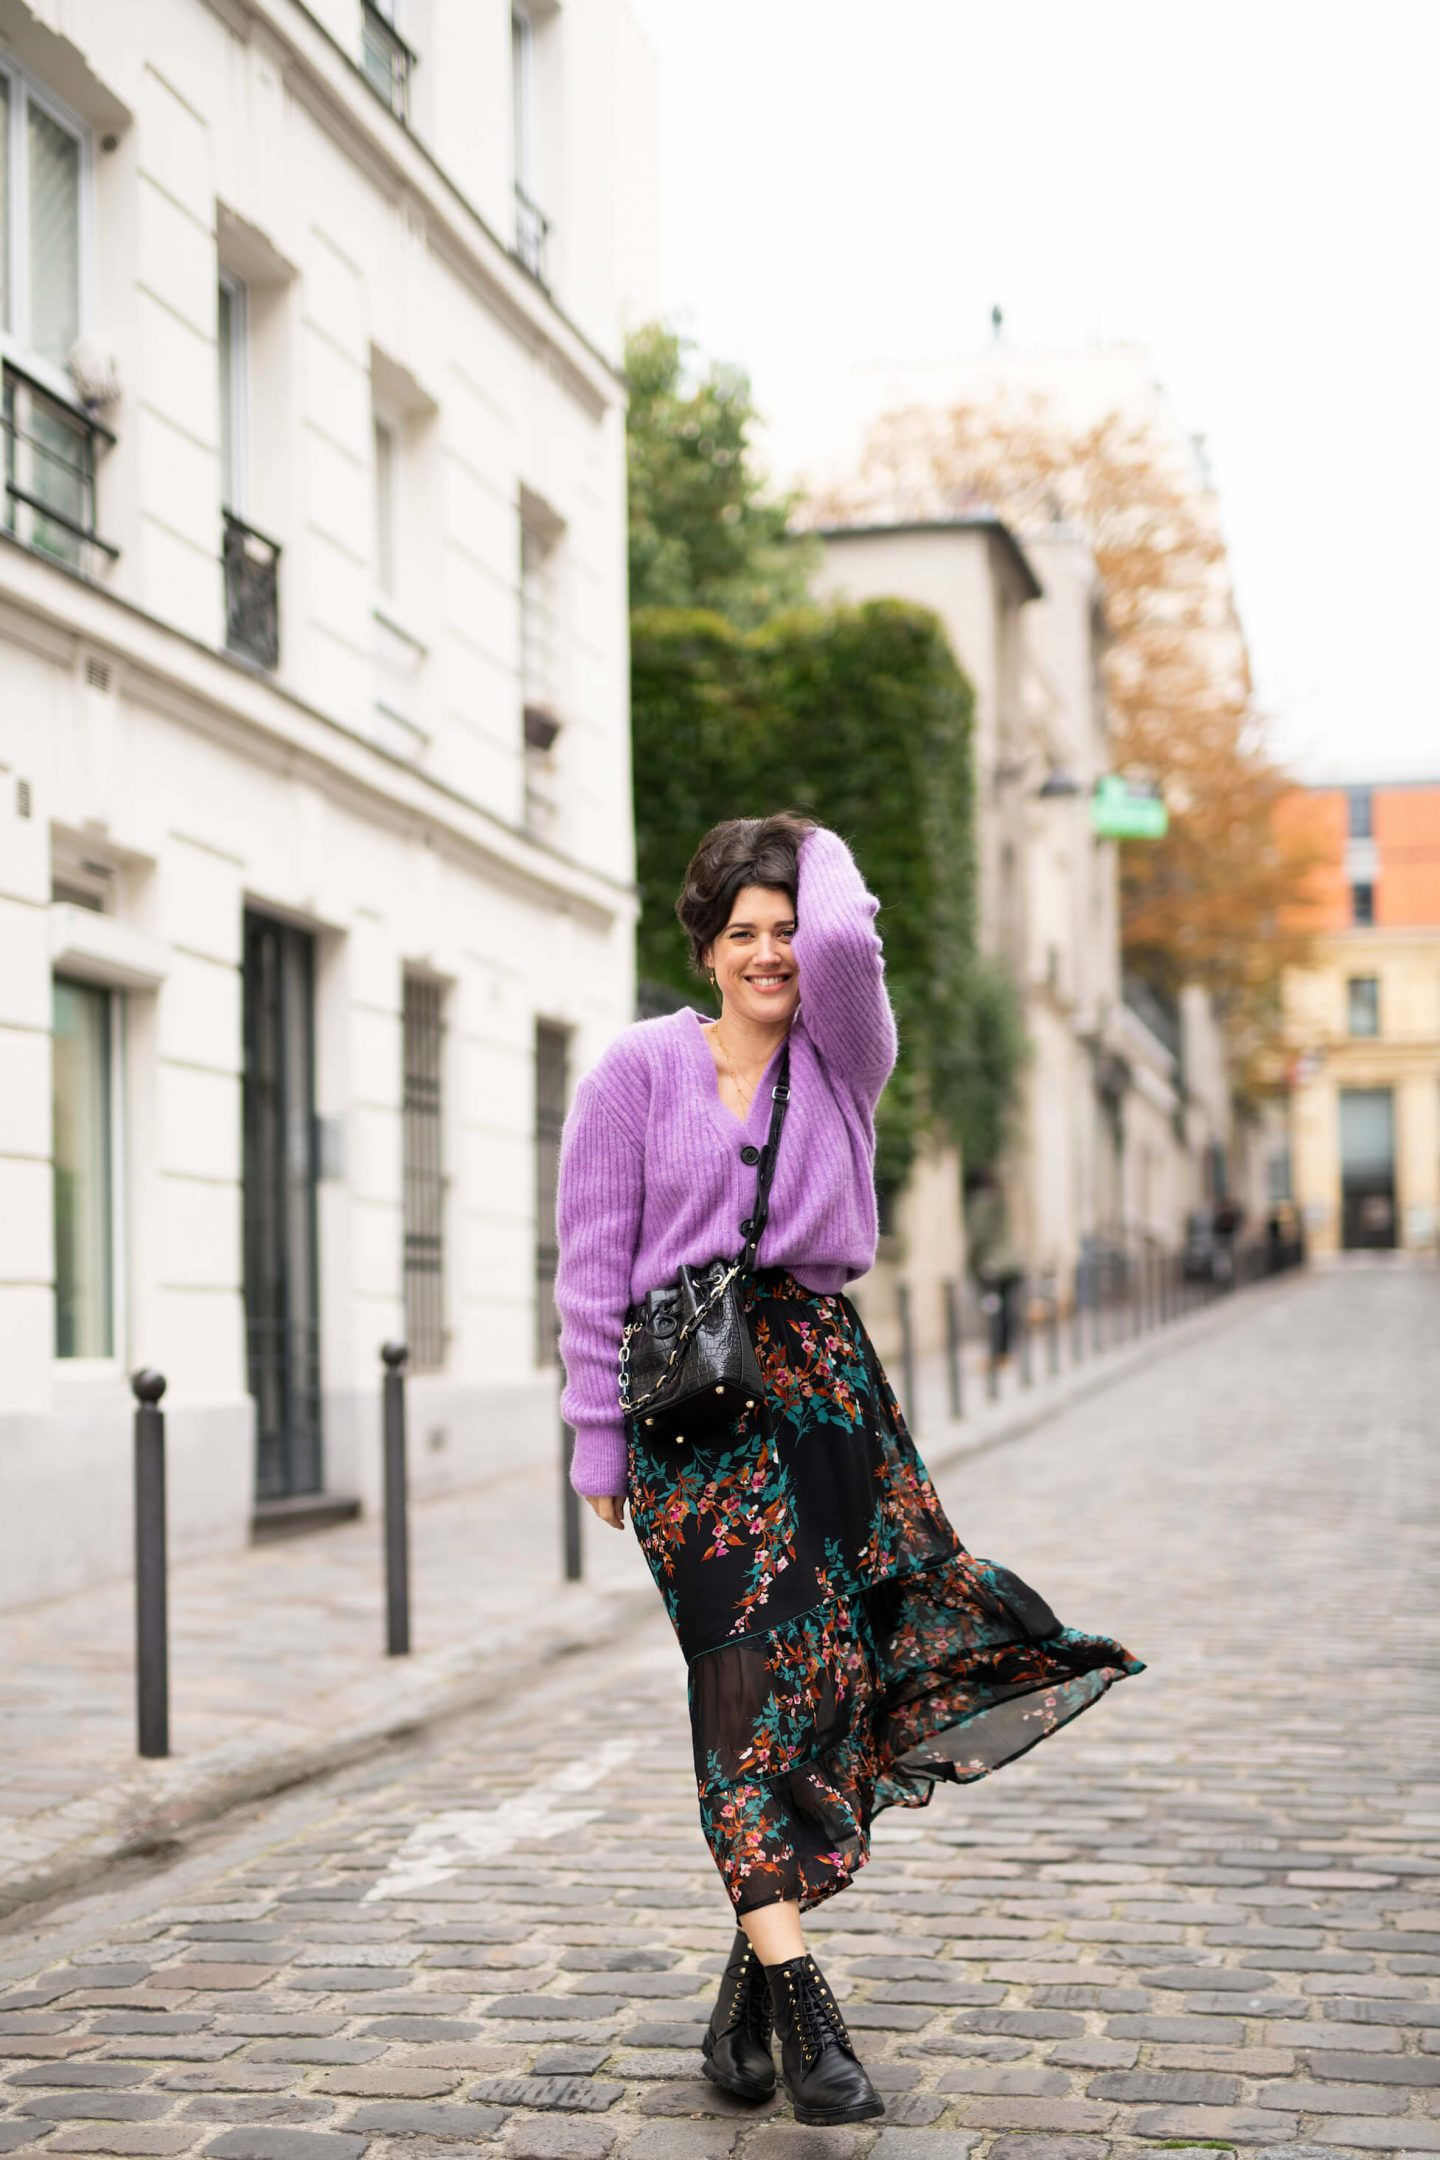 3 ways to wear Trois façons de porter le pull gilet violet lilas Anne-Laure L'atelier d'al latelierdal blog mode fashion lifestyle